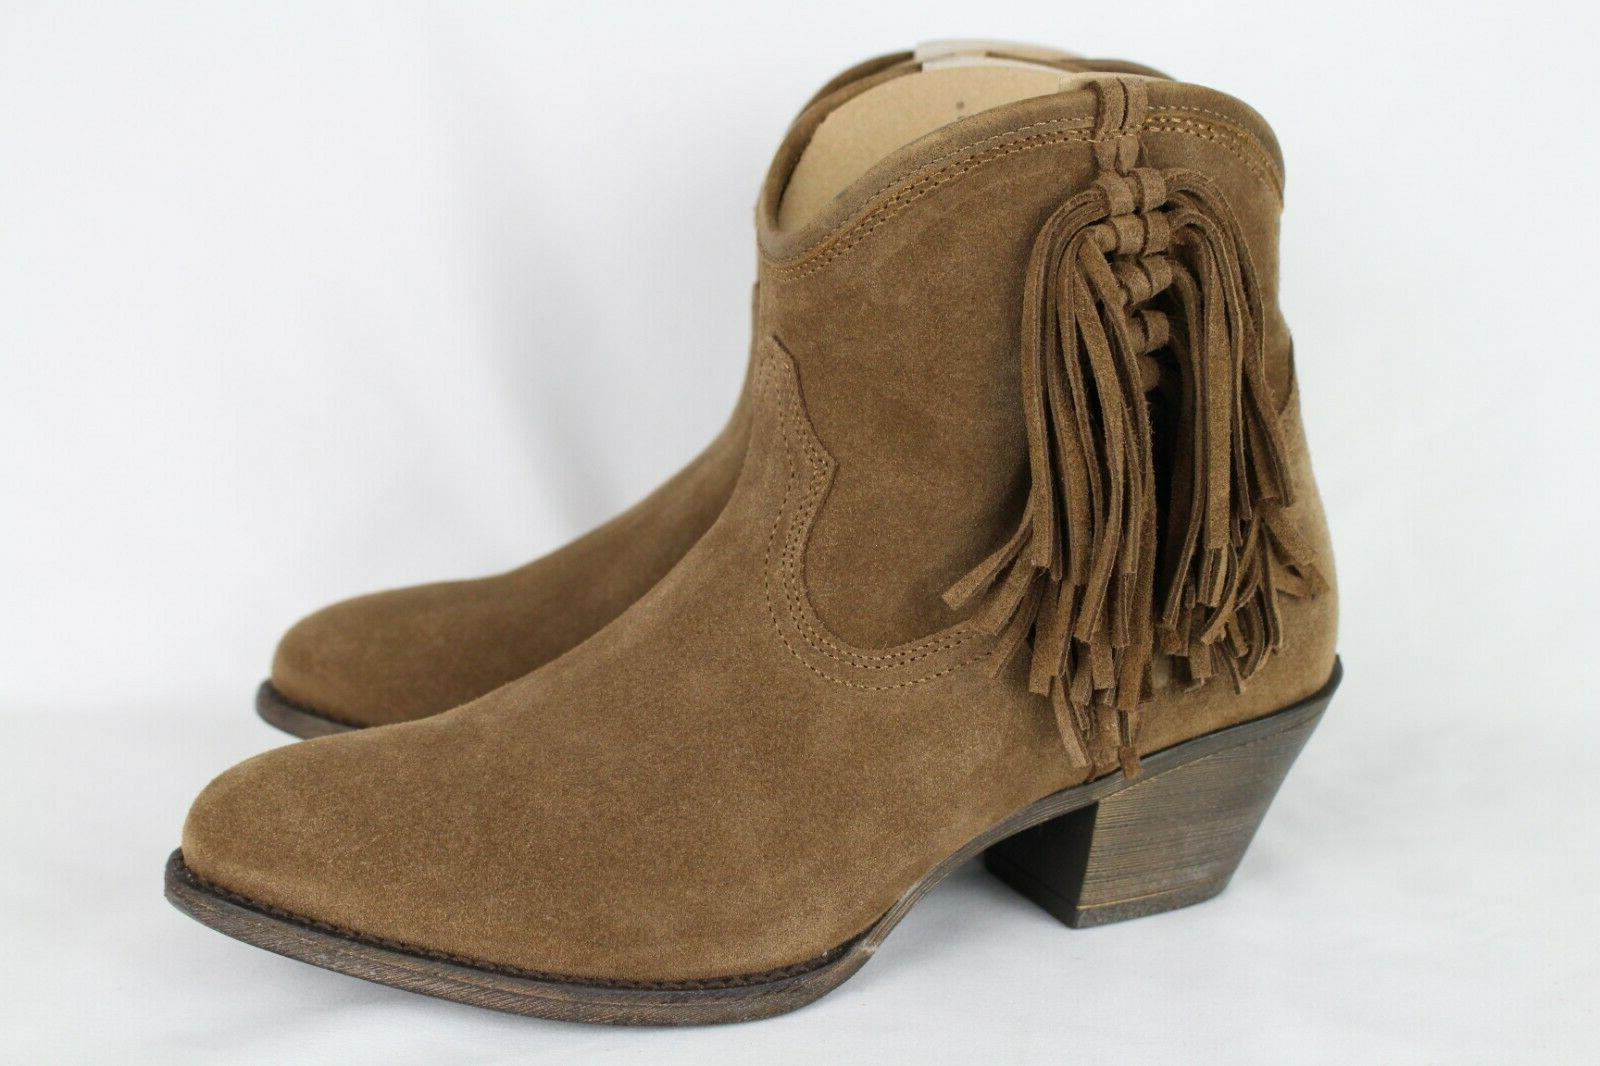 New Ariat Fringe Ankle Boots